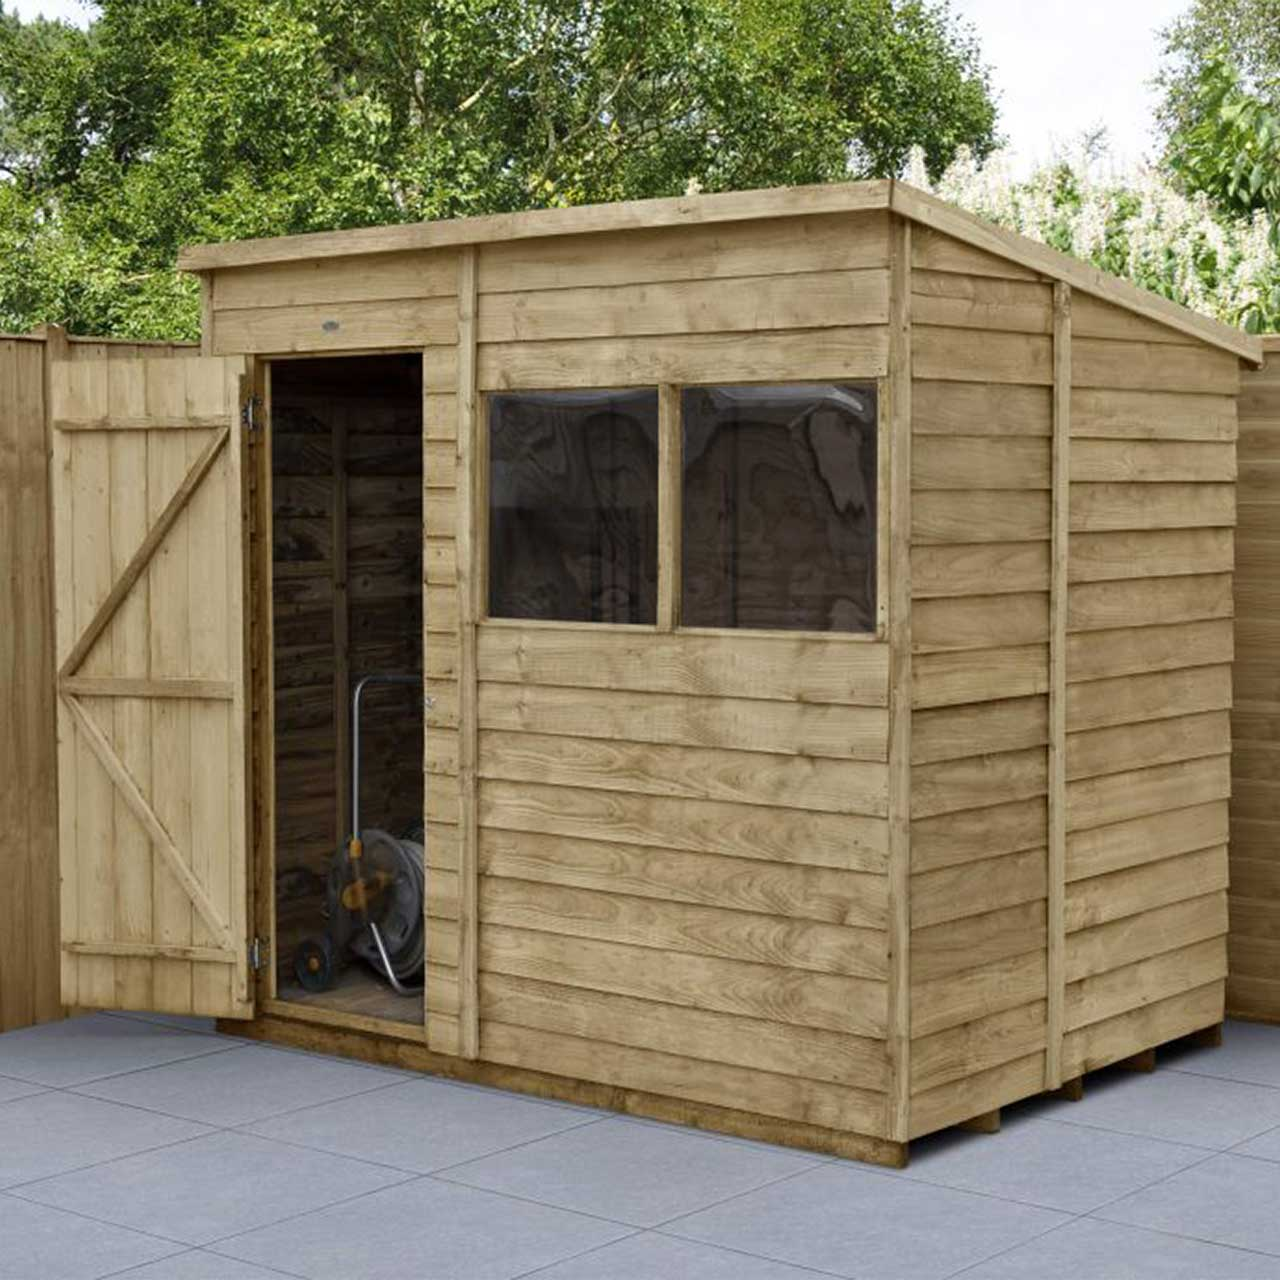 Overlap Pressure Treated 7×5 Pent Shed